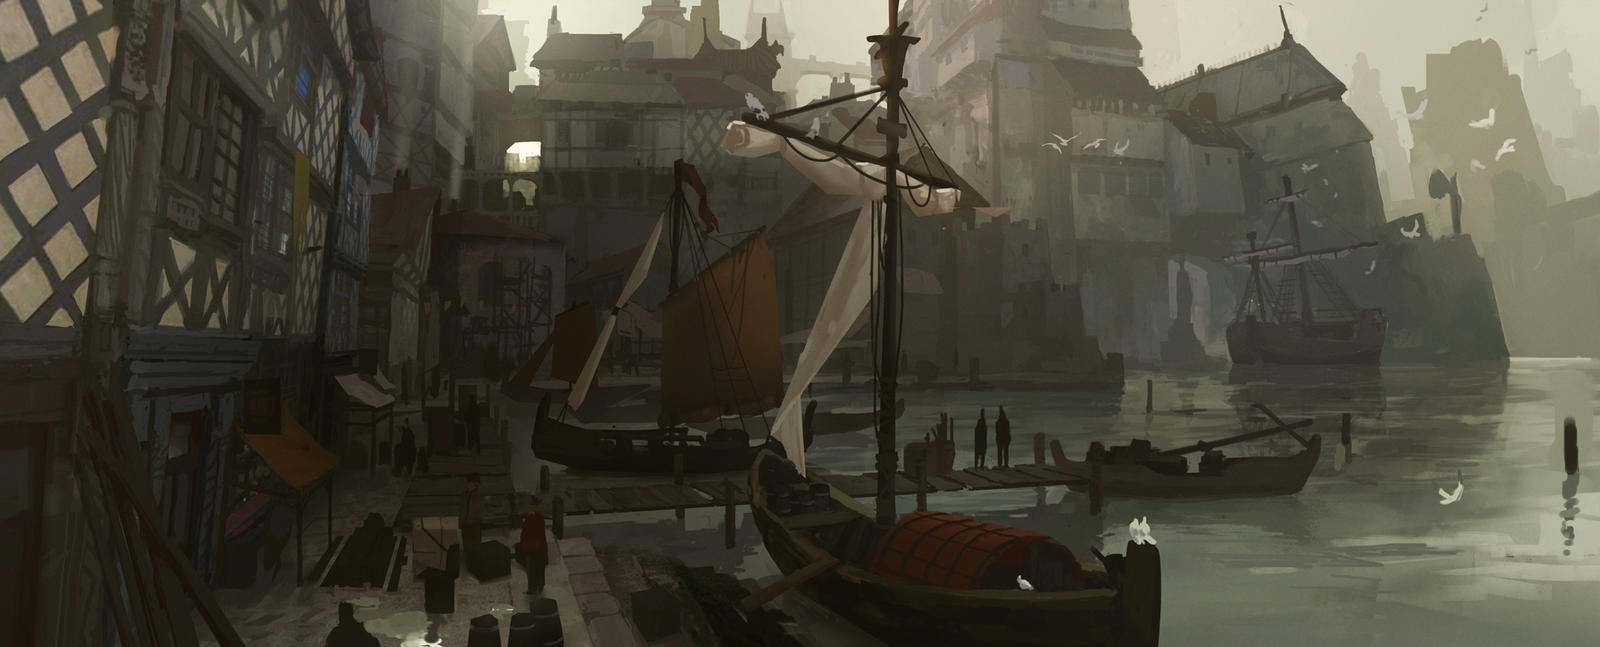 Medieval Port by Kurobot